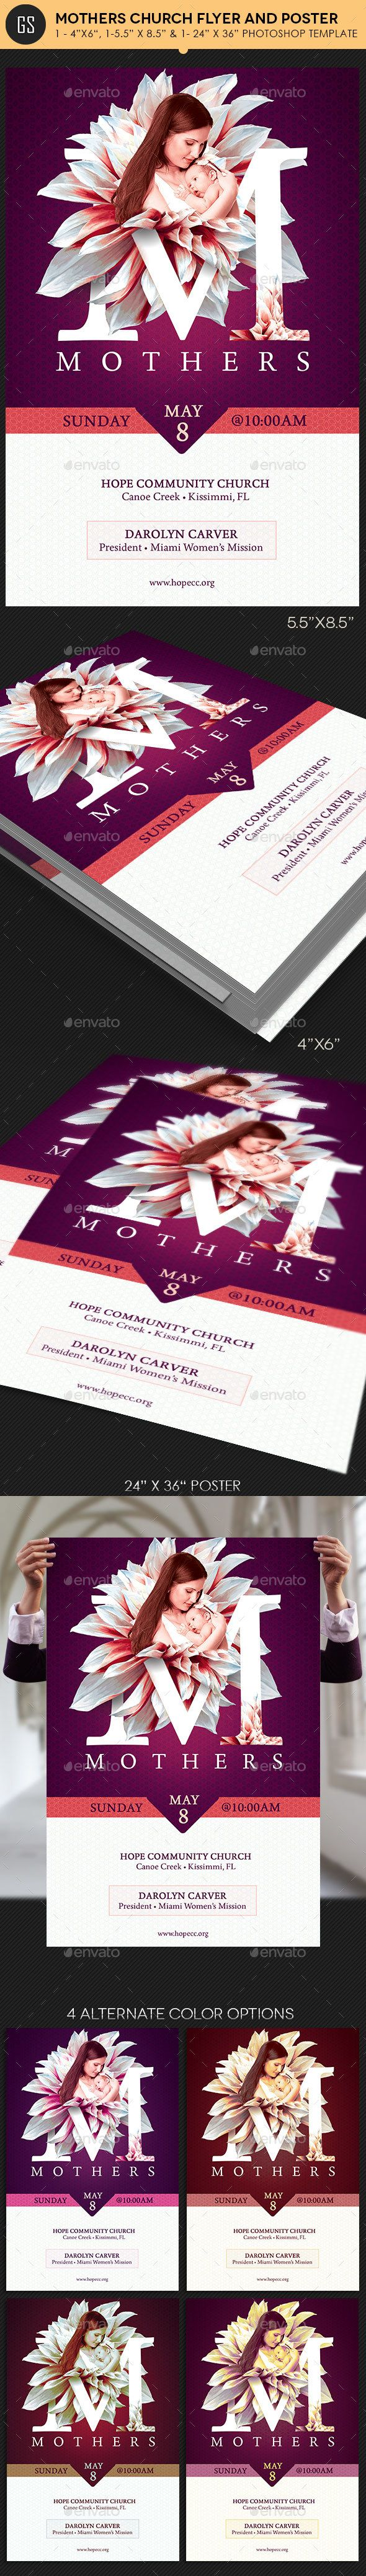 Mothers Church Flyer Poster Template - Church Flyers